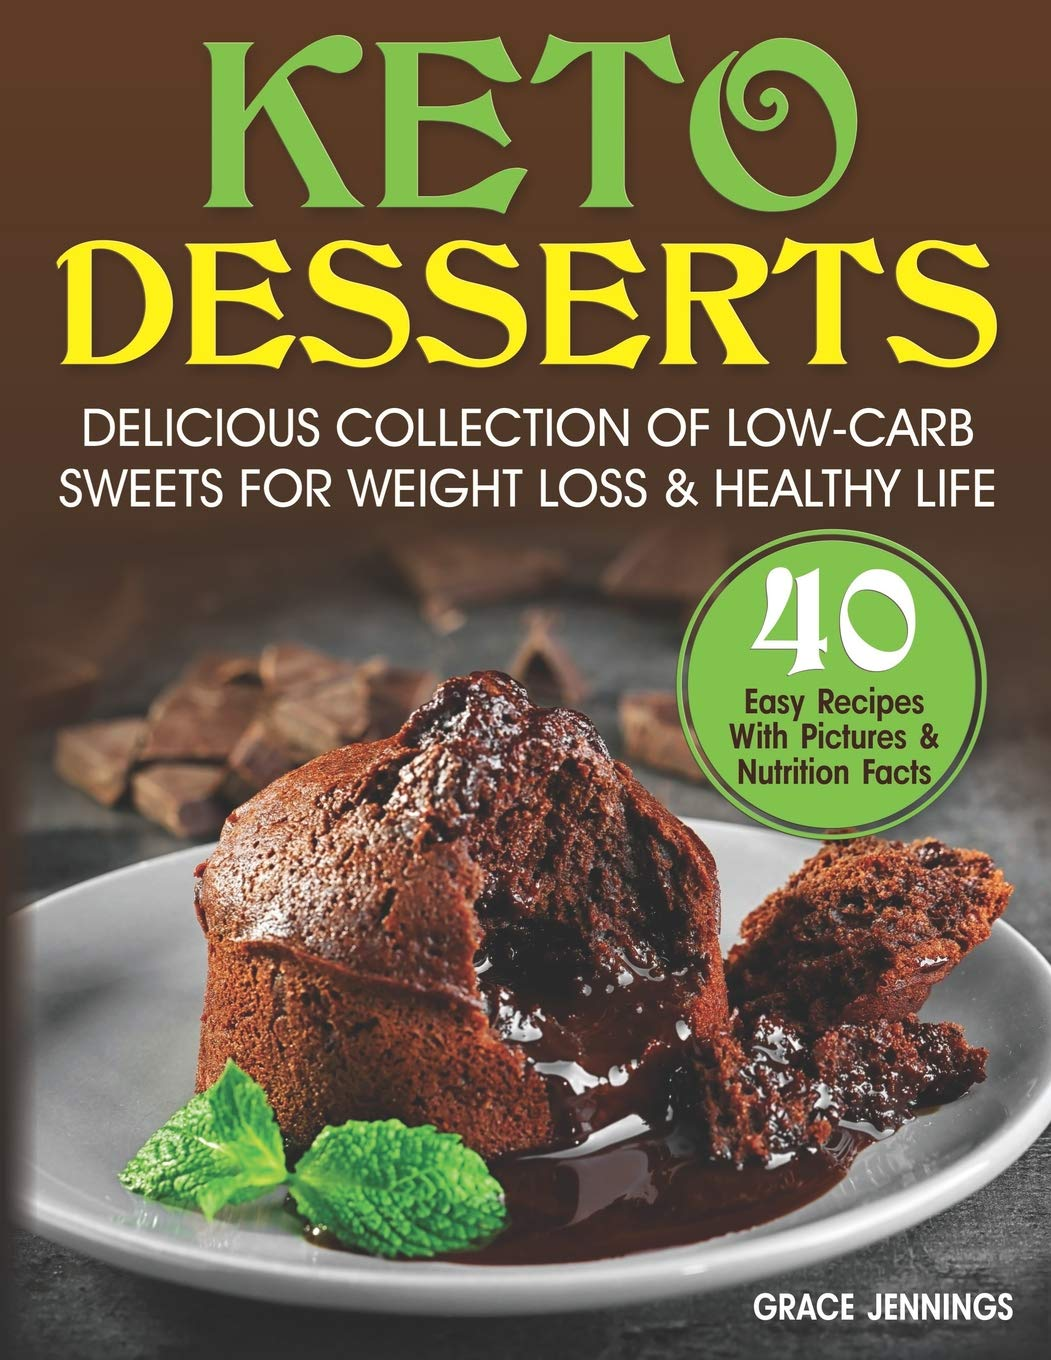 Keto-Friendly Dessert Recipes Secrets And Tips